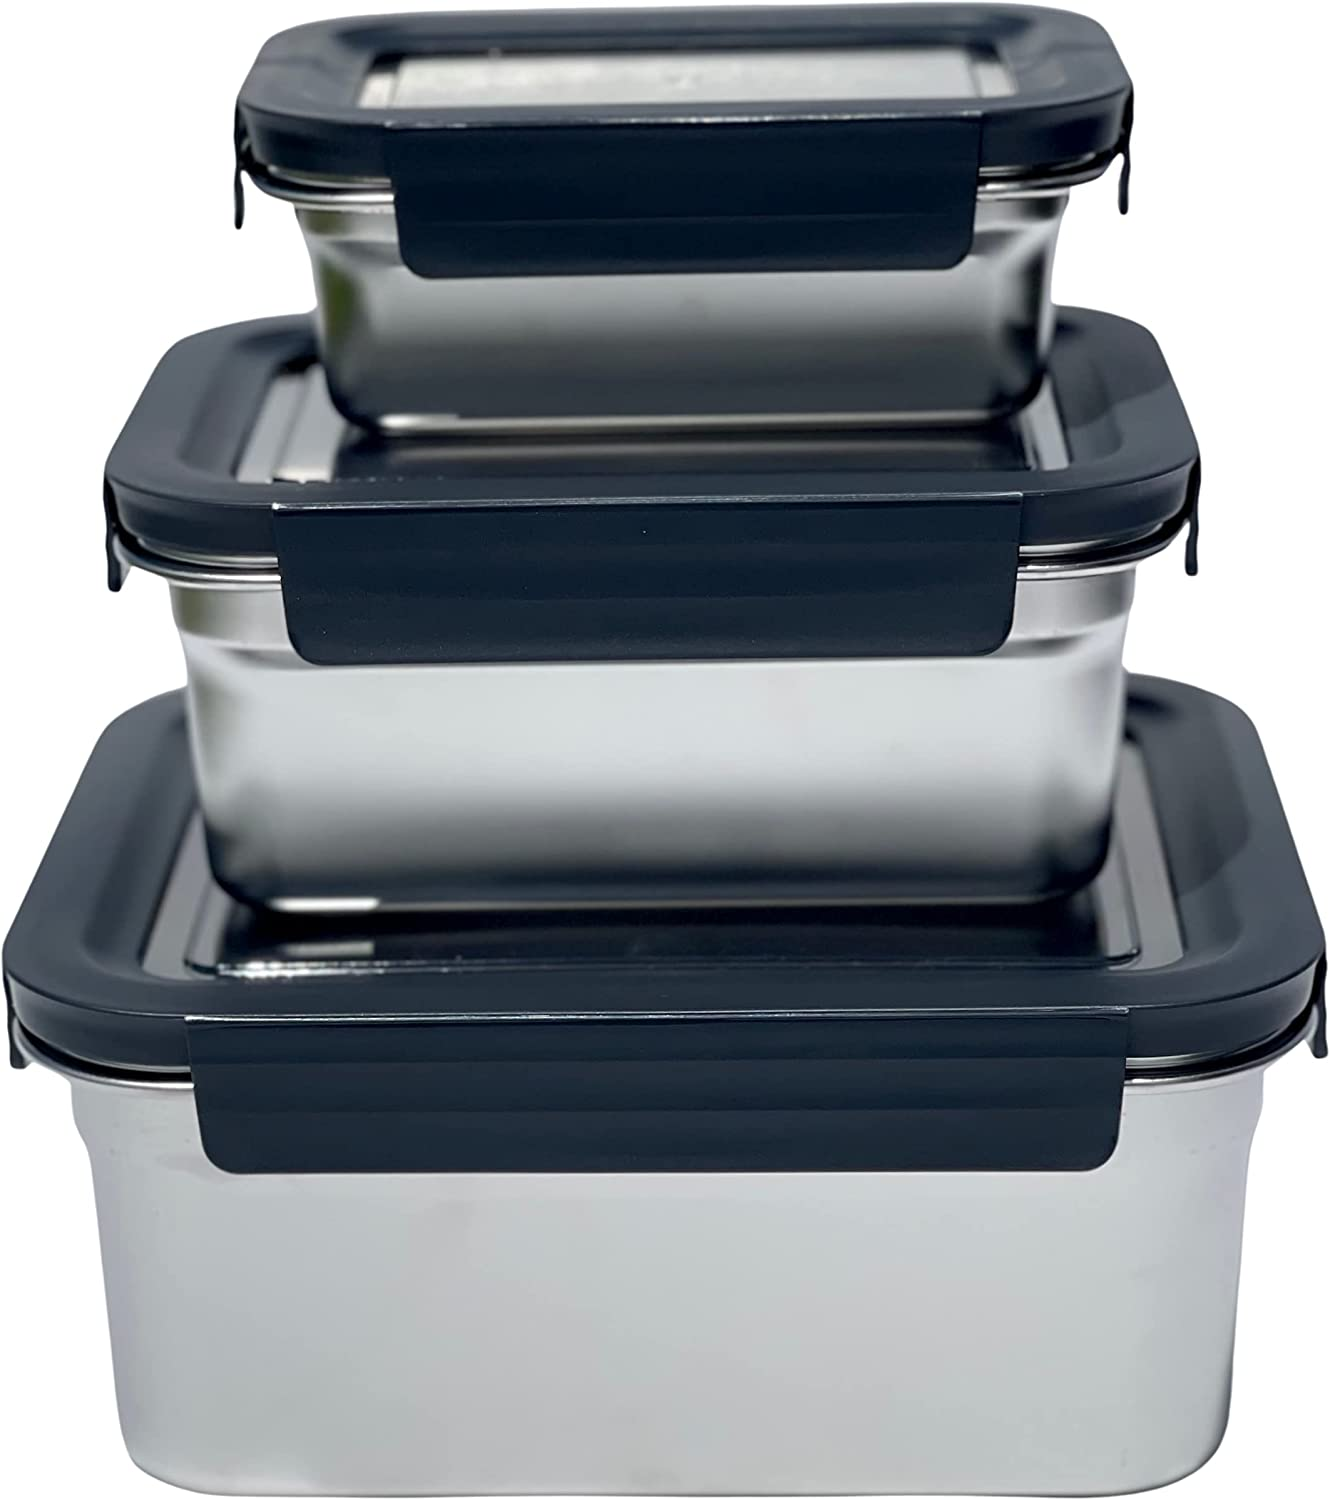 Stainless Steel Containers Black Set of 3 sizes - Premium Storage for Food Grains Pantry Freezer Smart Boxes for Cooler Barbecue Bento Leftovers Takeout Clear Leakproof Lids ALL BPA FREE By Jacebox